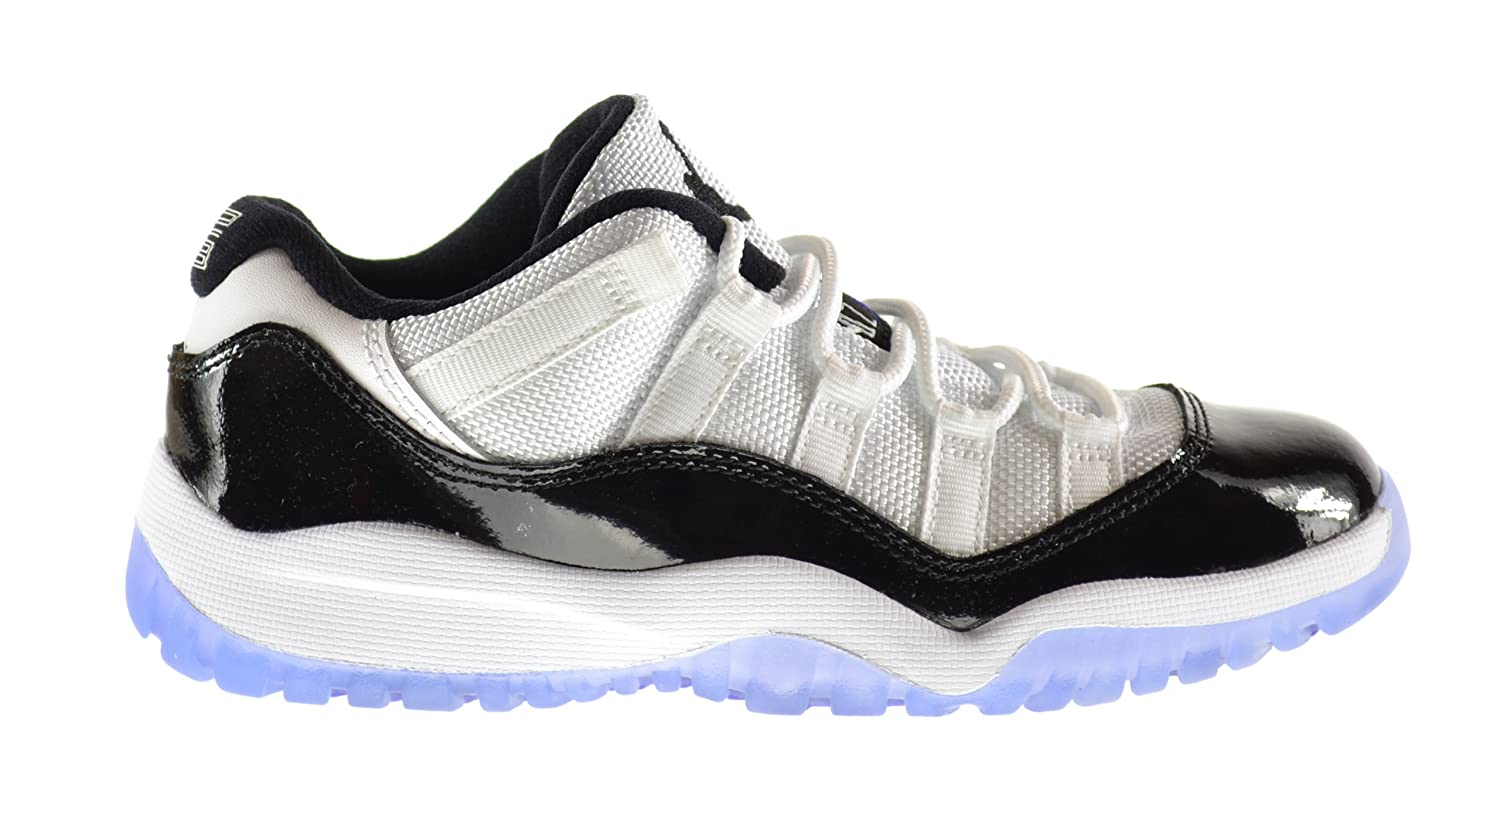 uk availability e988d 5844a Jordan 11 Retro Low BP Little Kids Shoes White/Black-Dark ...